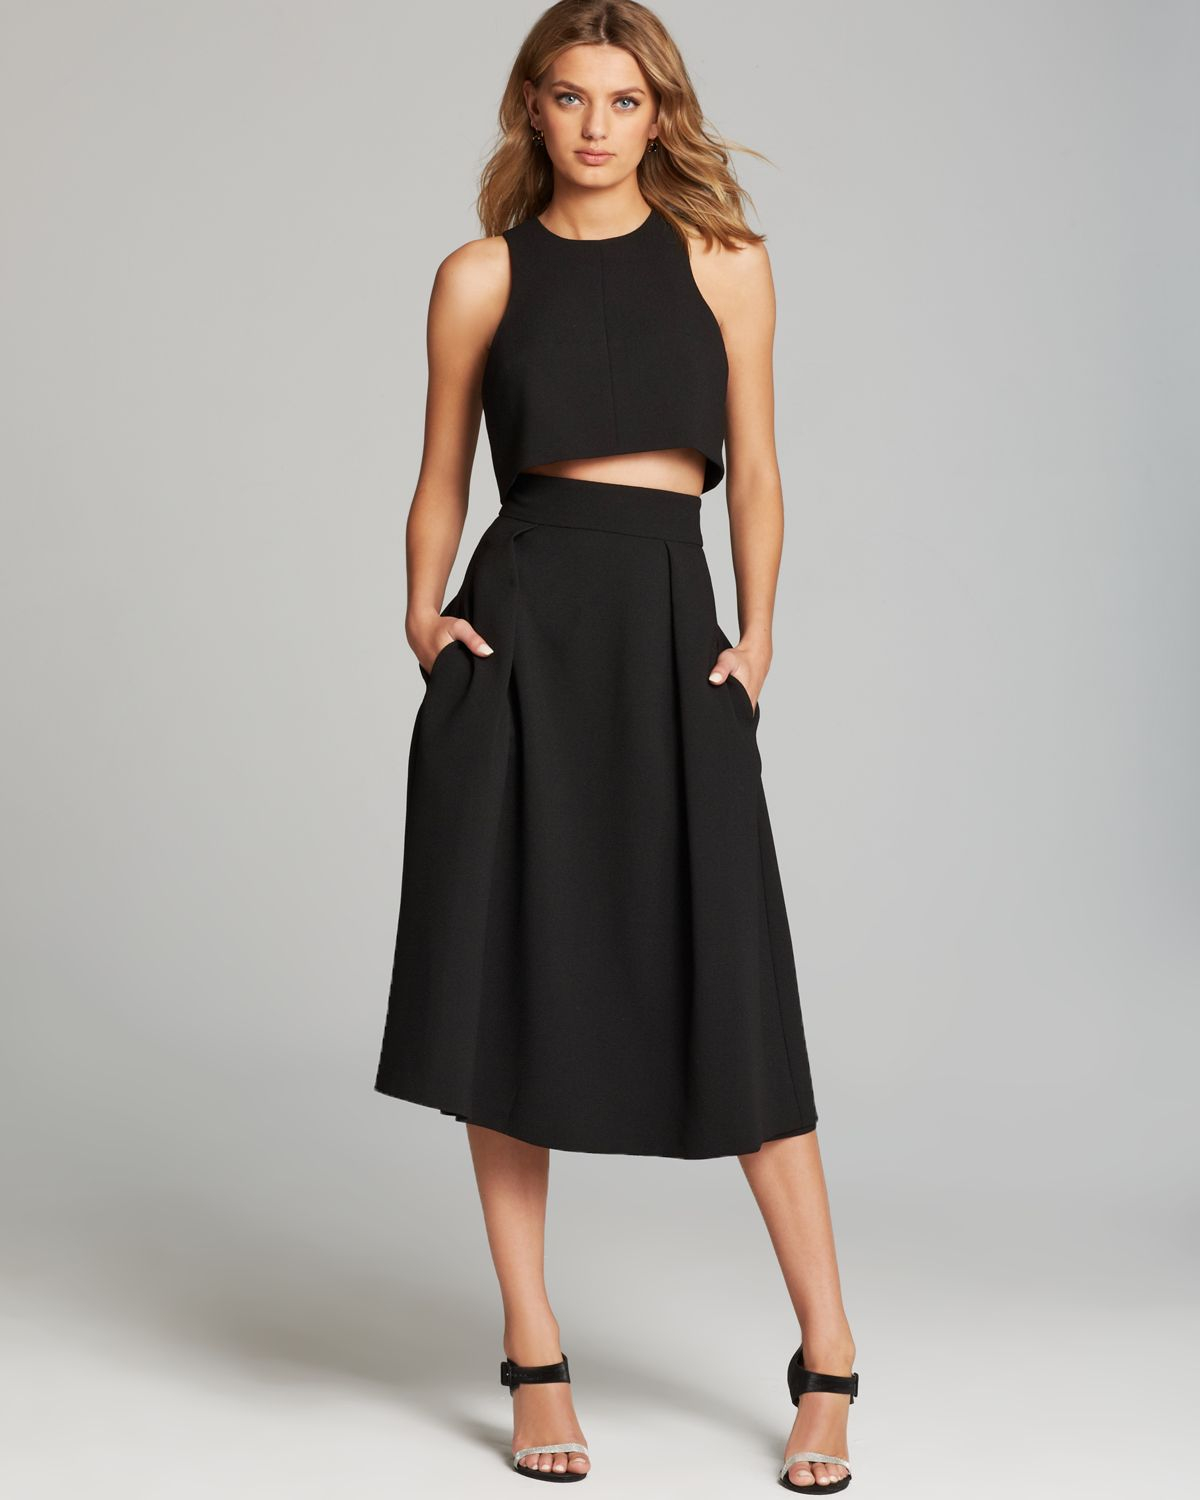 Black halo Dress - Sanibel Two Piece in Black | Lyst